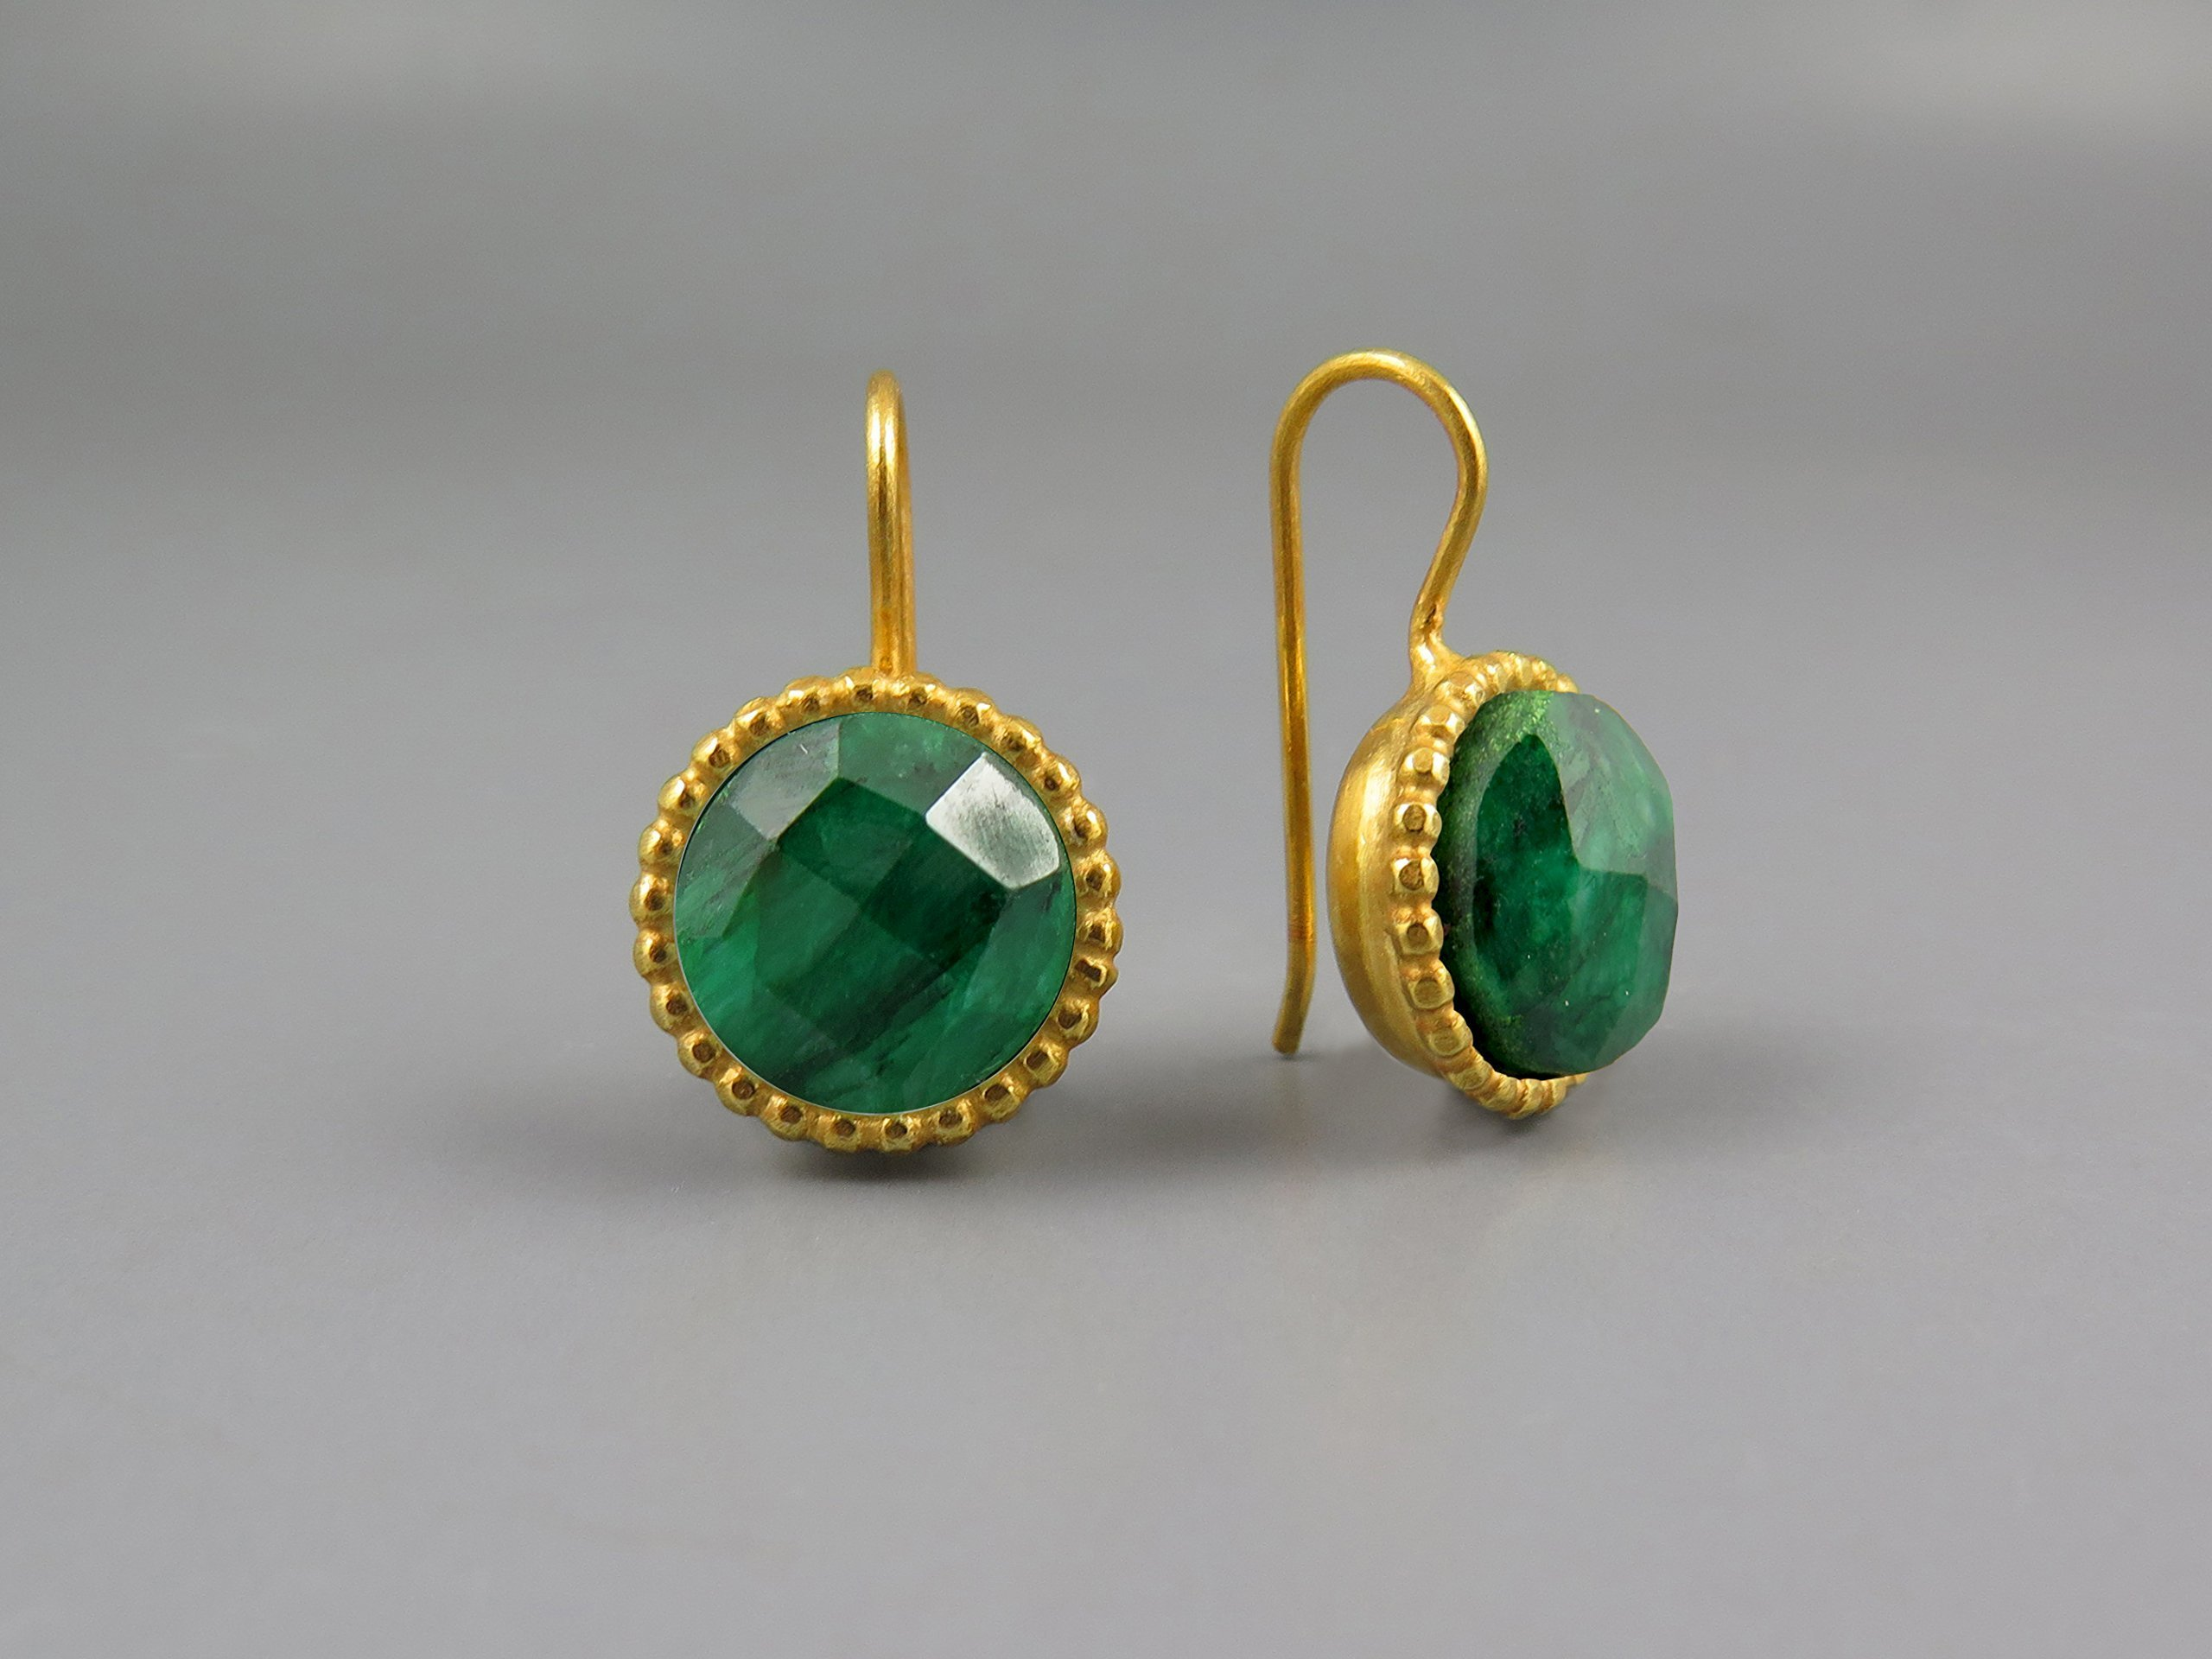 Emerald Earring Women Gold Plated Earrings 24k Round Drop Earring May Birthstone Jewelry Genuine Natural Green Emerald Gemstones Green Gold Earring Unique Gifts For Women Casual Earring Modern Earring